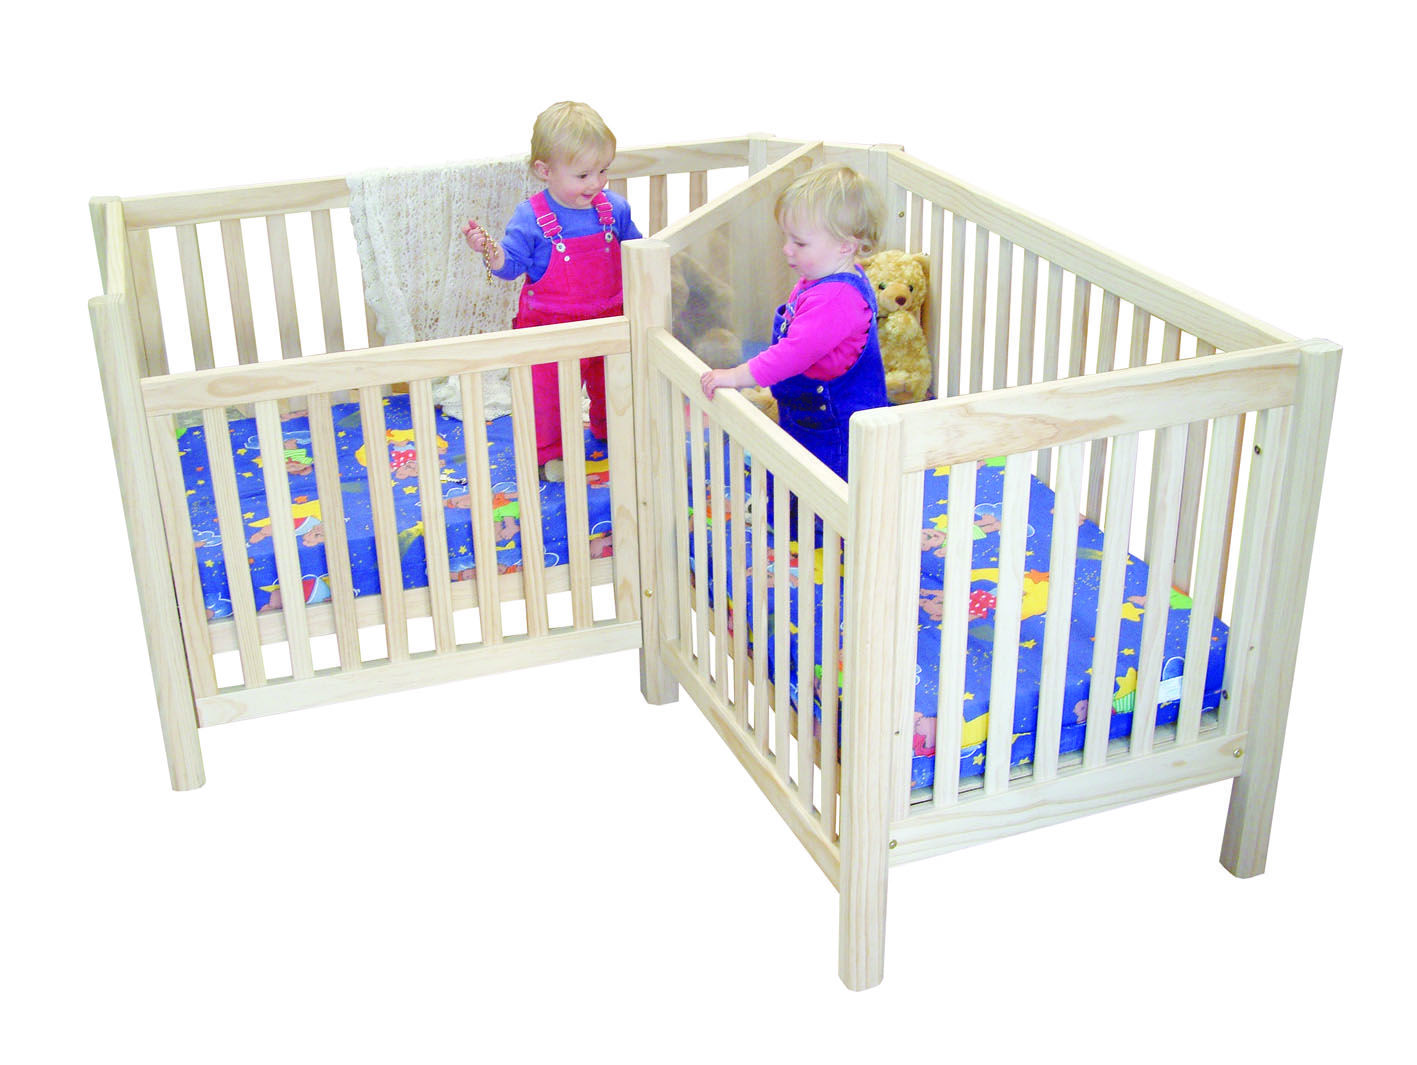 Baby bed extension uk - Did You Know That There Are Special Cribs Made For Twins Check Out These Unique